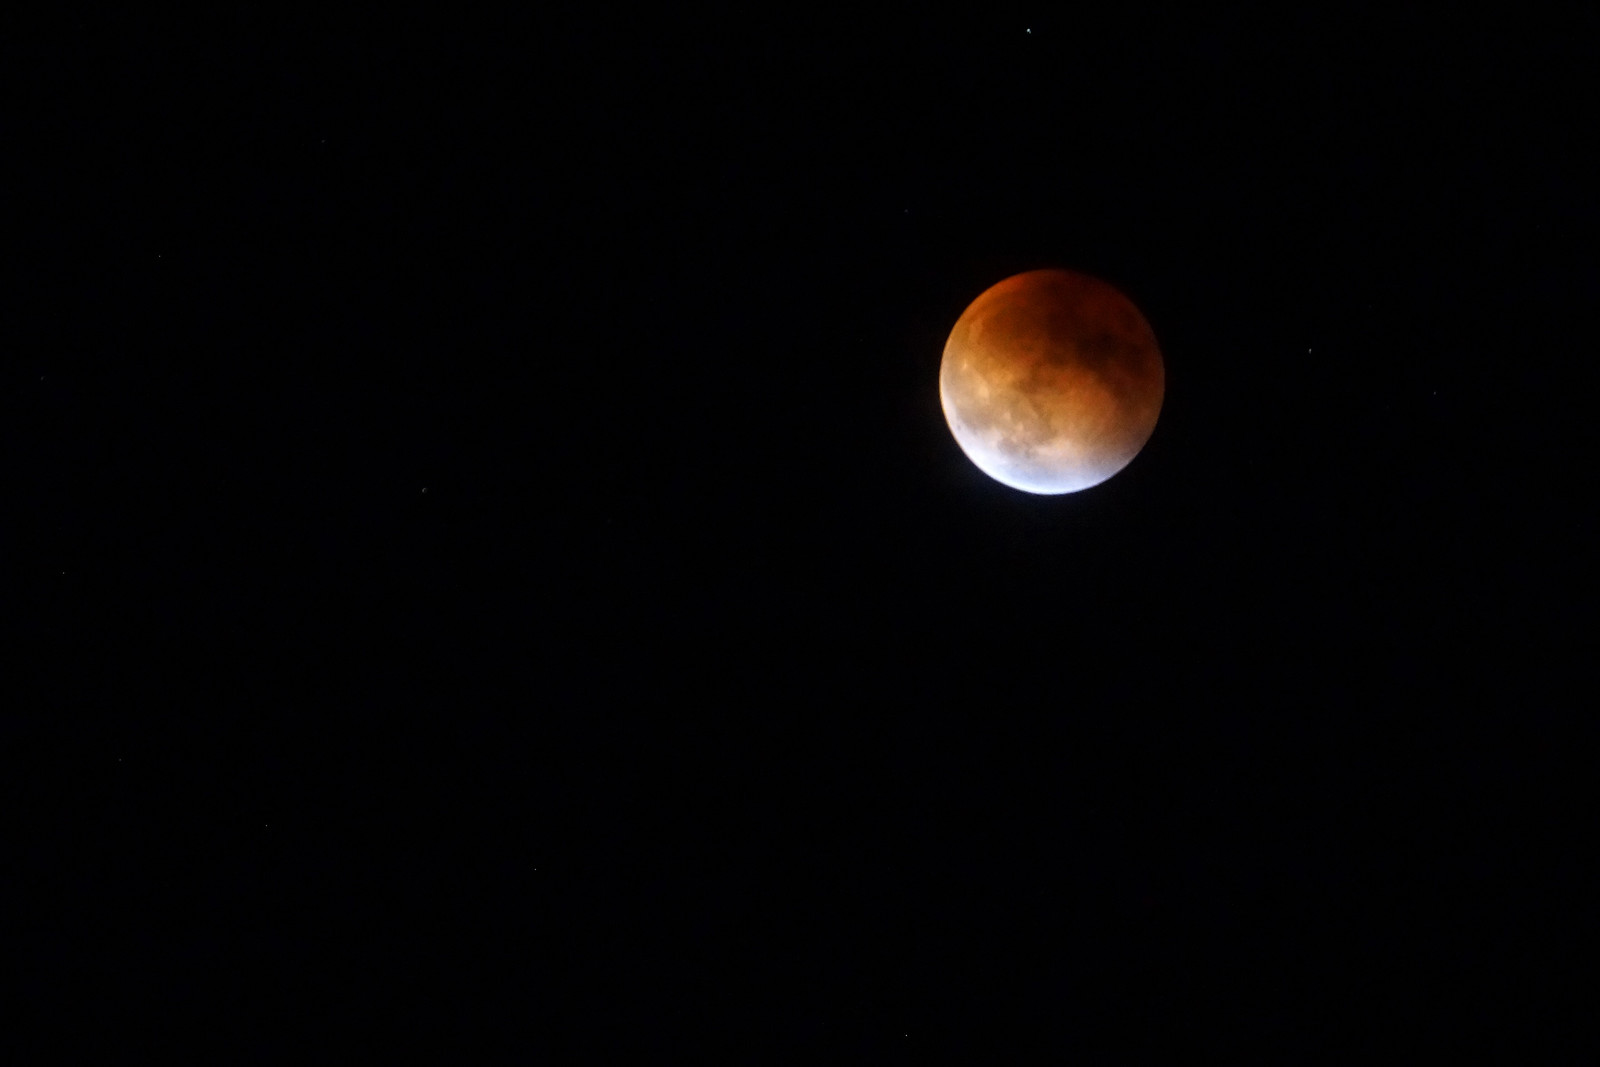 Supermoon, Blood Moon, Lunar Eclipse